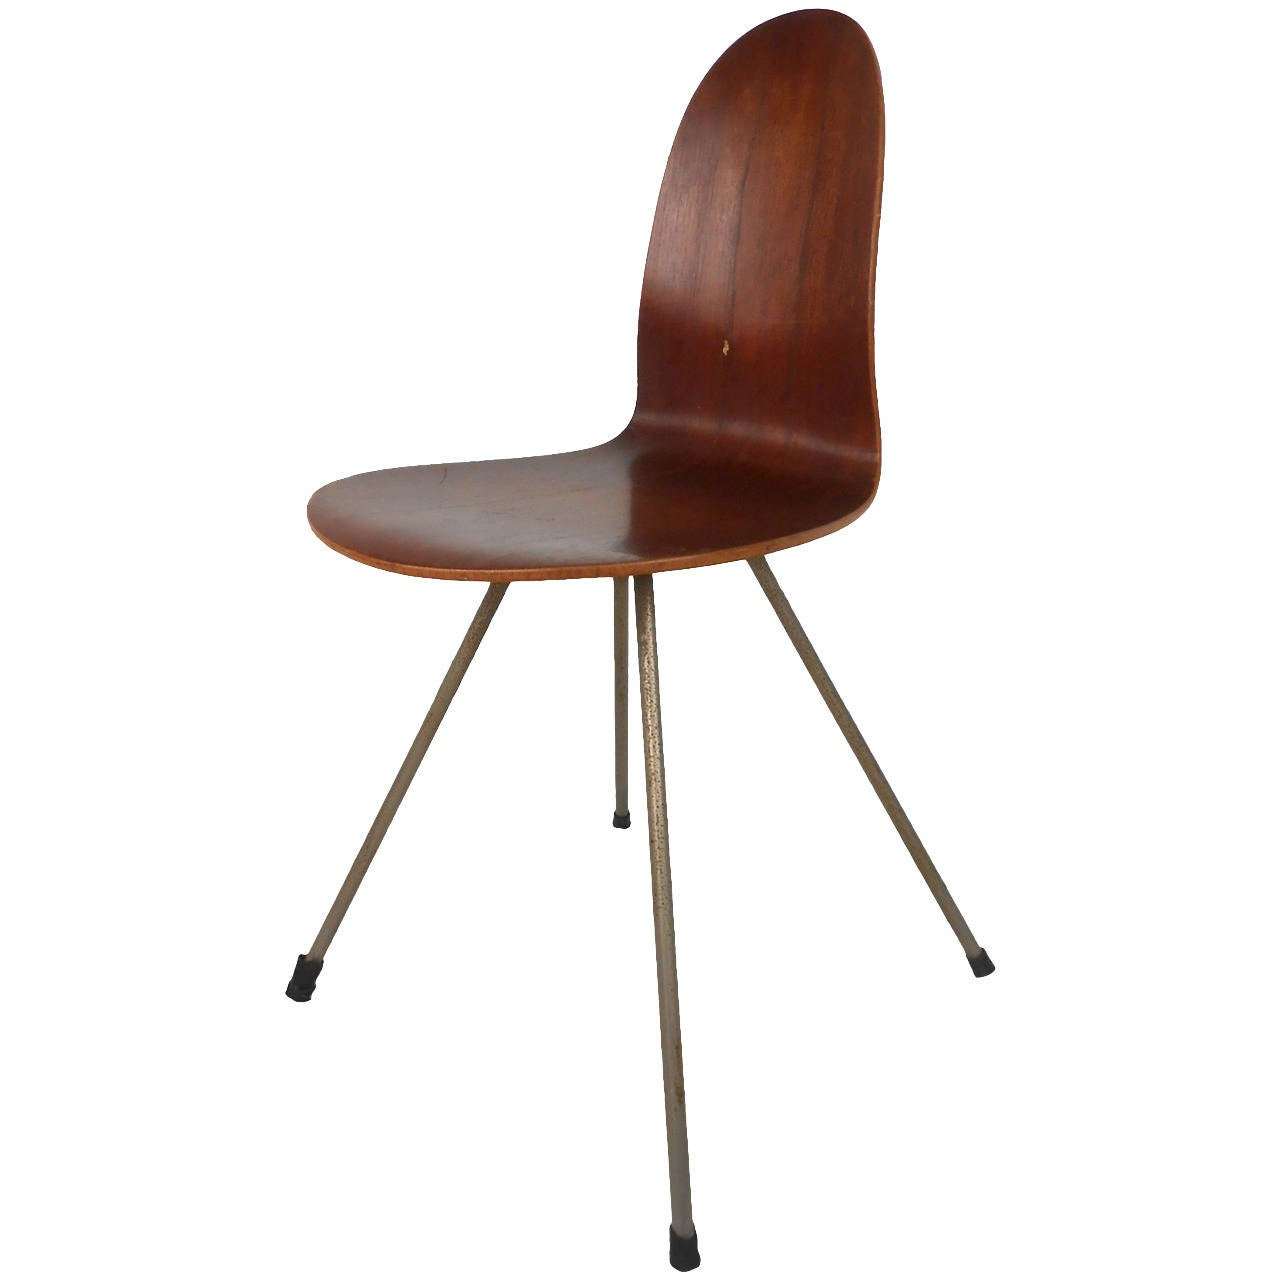 Single bentwood chair by illums bolighus for sale at 1stdibs